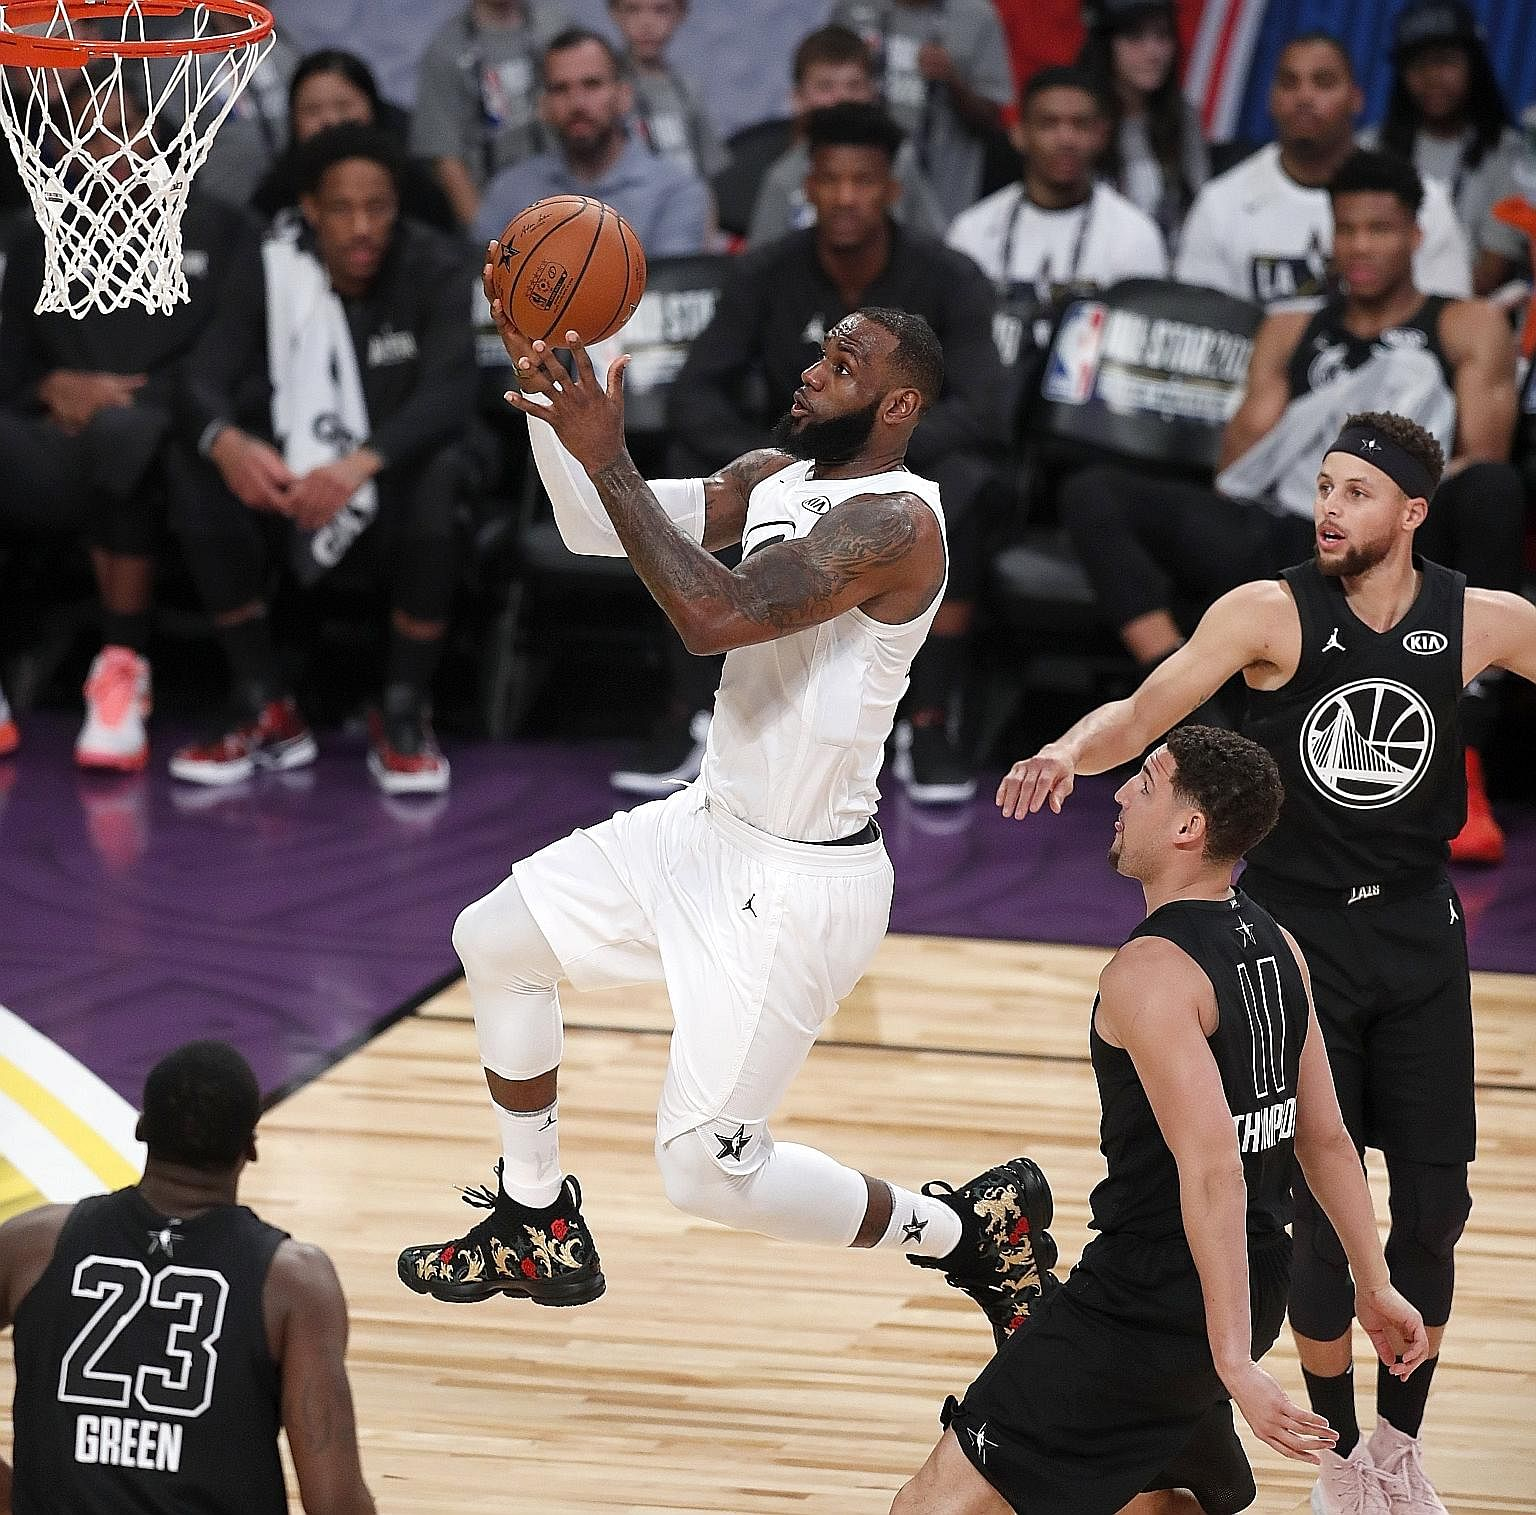 LeBron James going up for a shot after getting past (from left) Draymond Green, Klay Thompson and Stephen Curry in Sunday's All-Star Game.